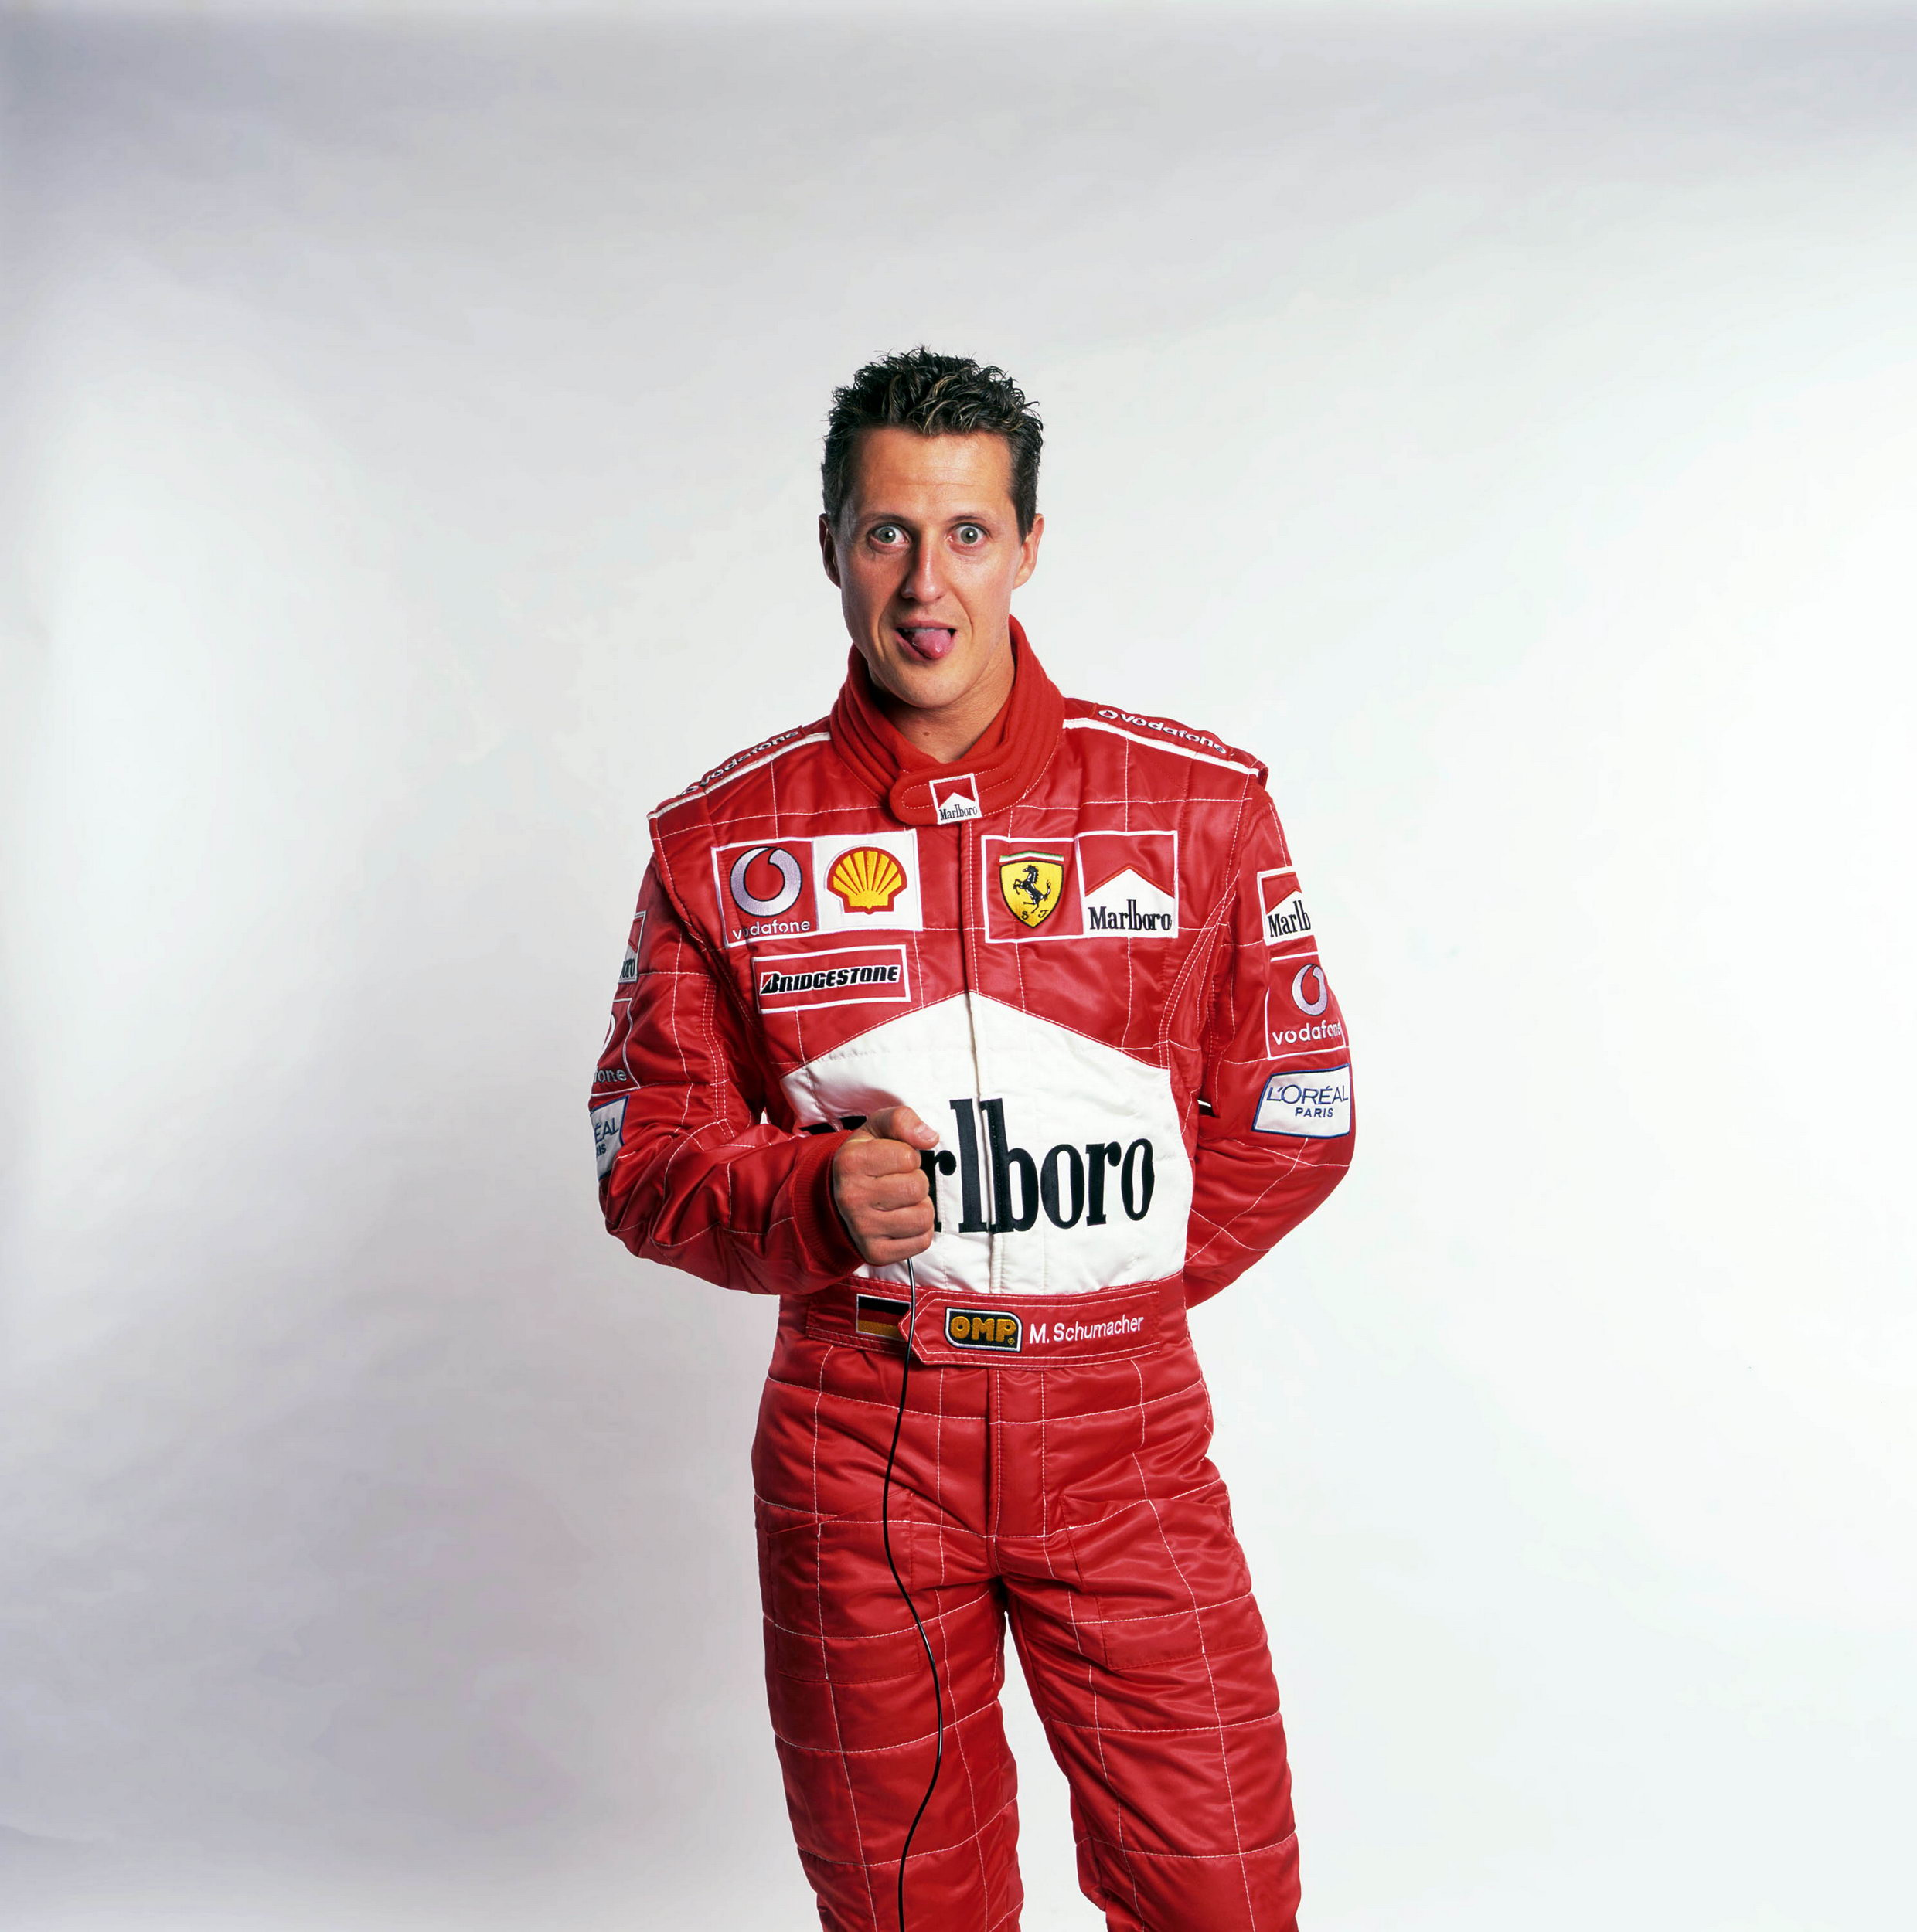 Suits Hd Wallpaper Quotes Michael Schumacher Photo Gallery 23 Best Michael